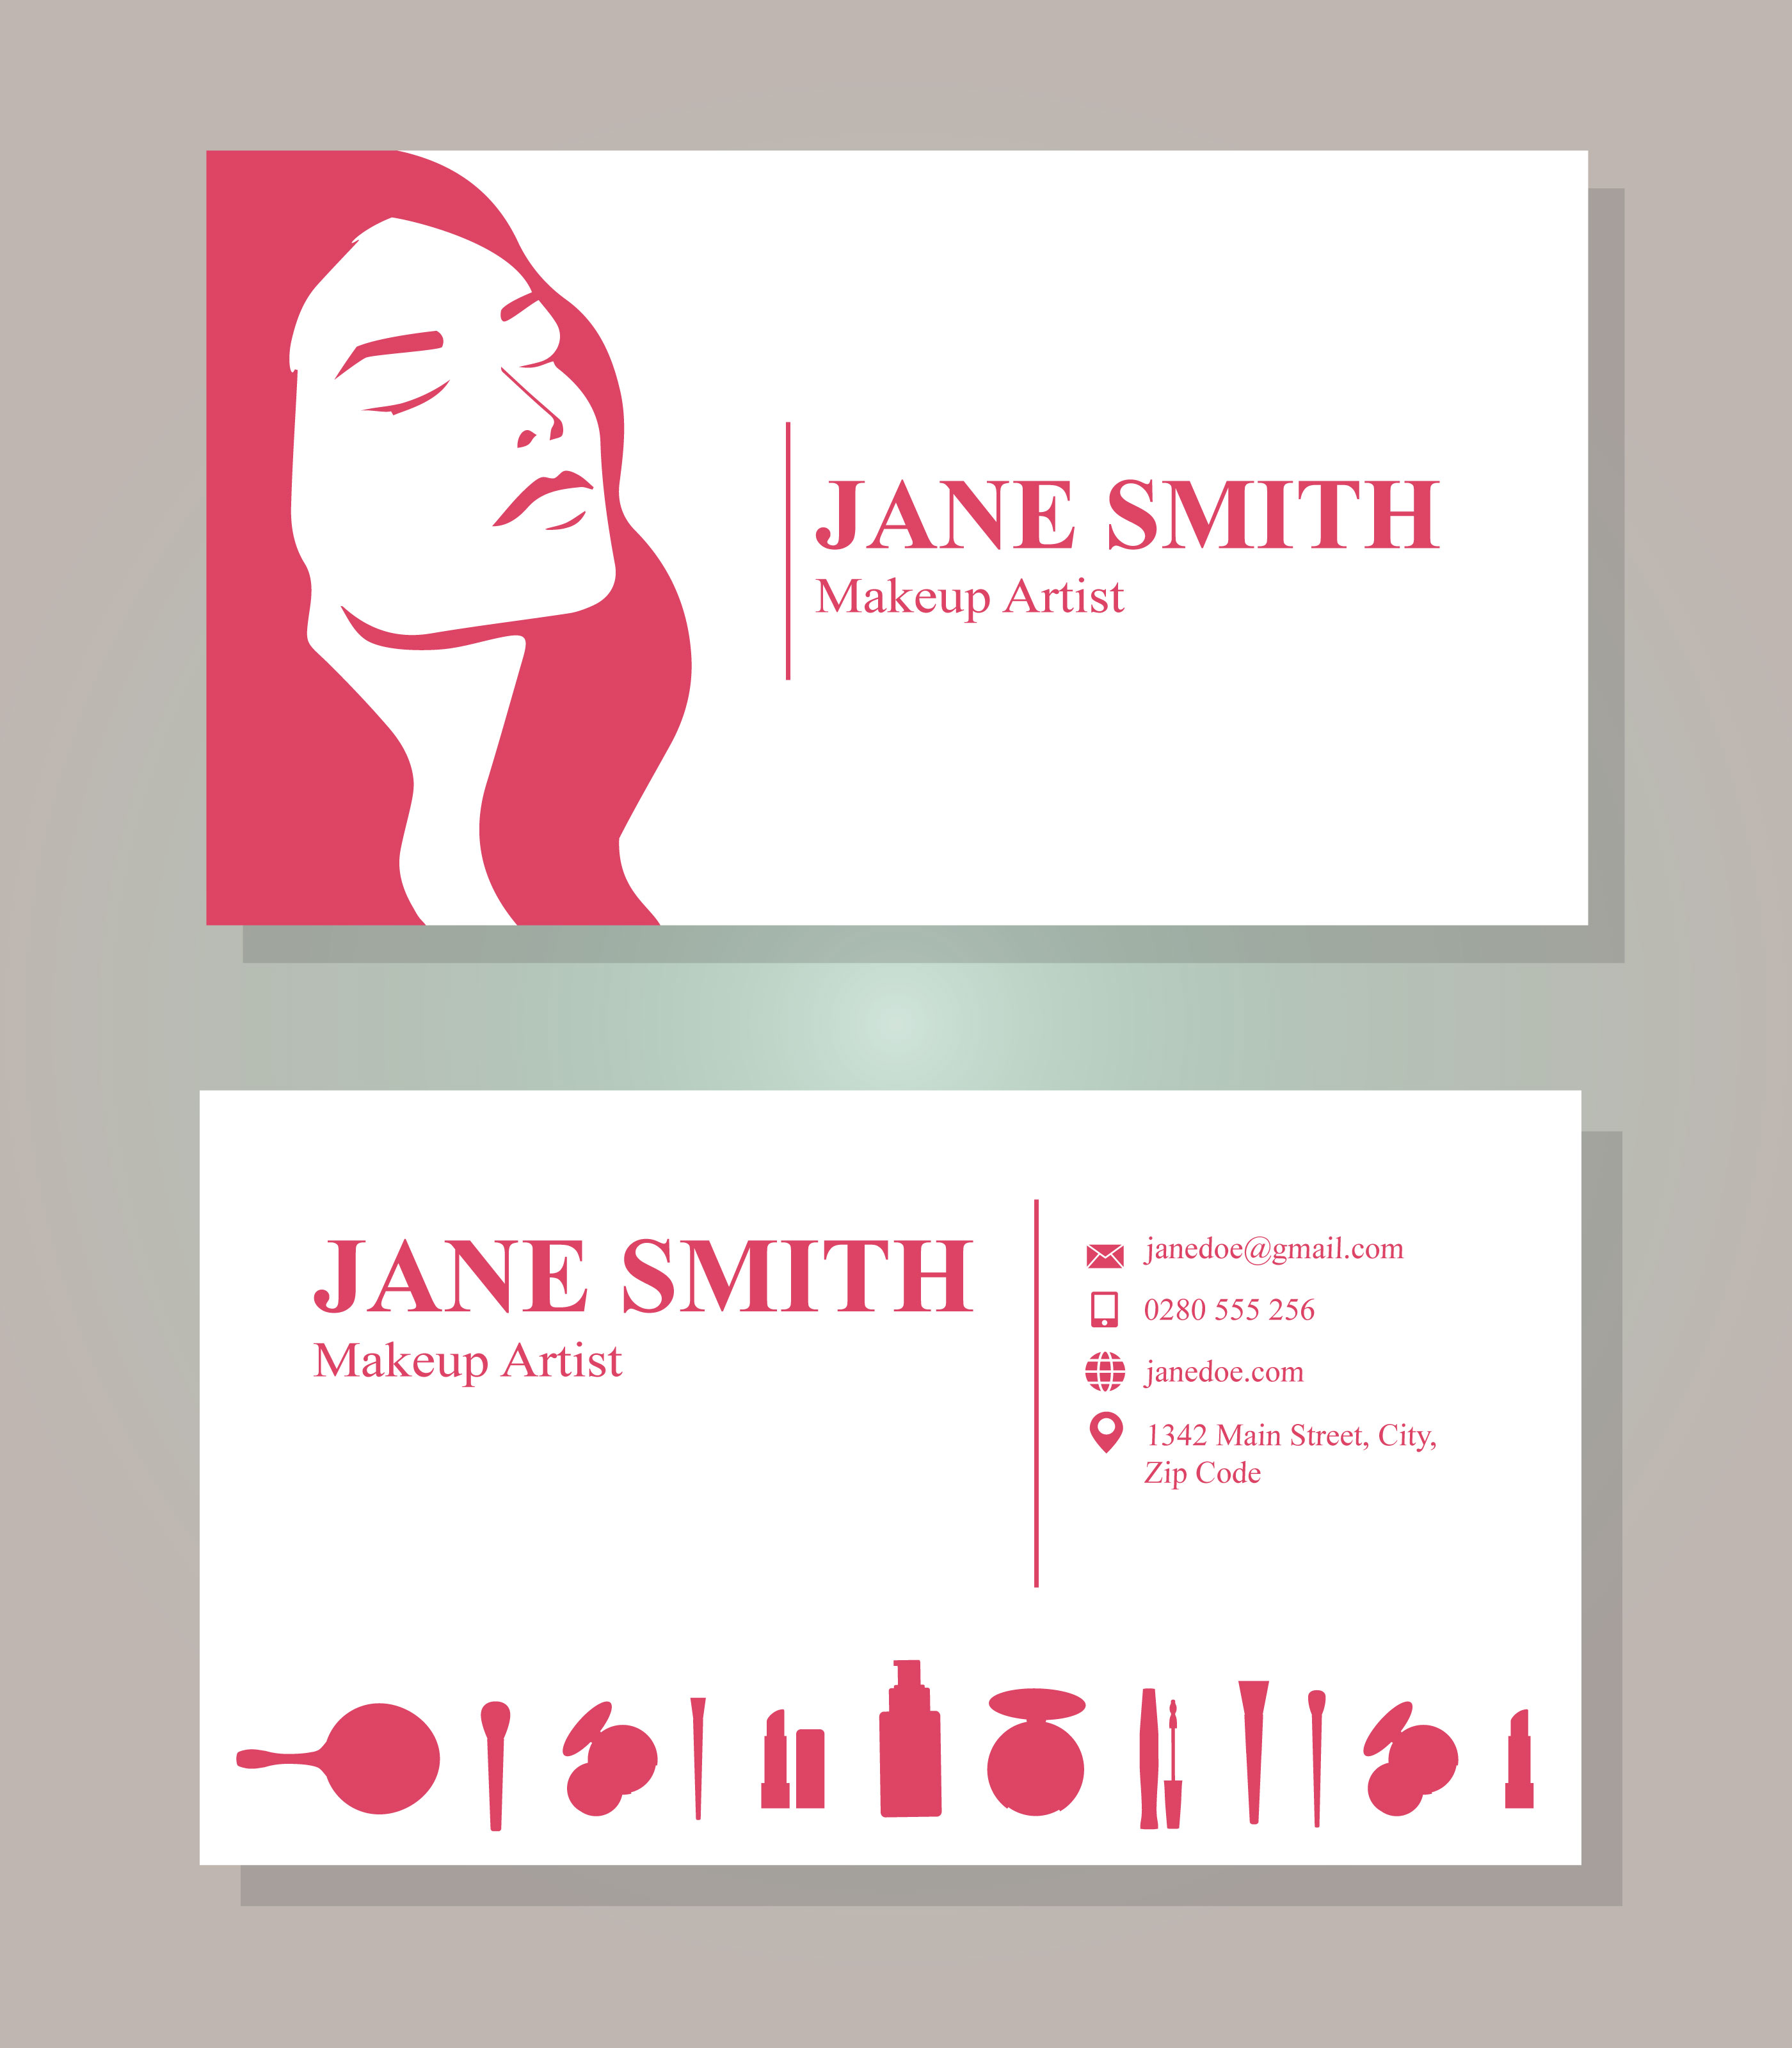 Makeup artist business card free vector art 33582 free downloads colourmoves